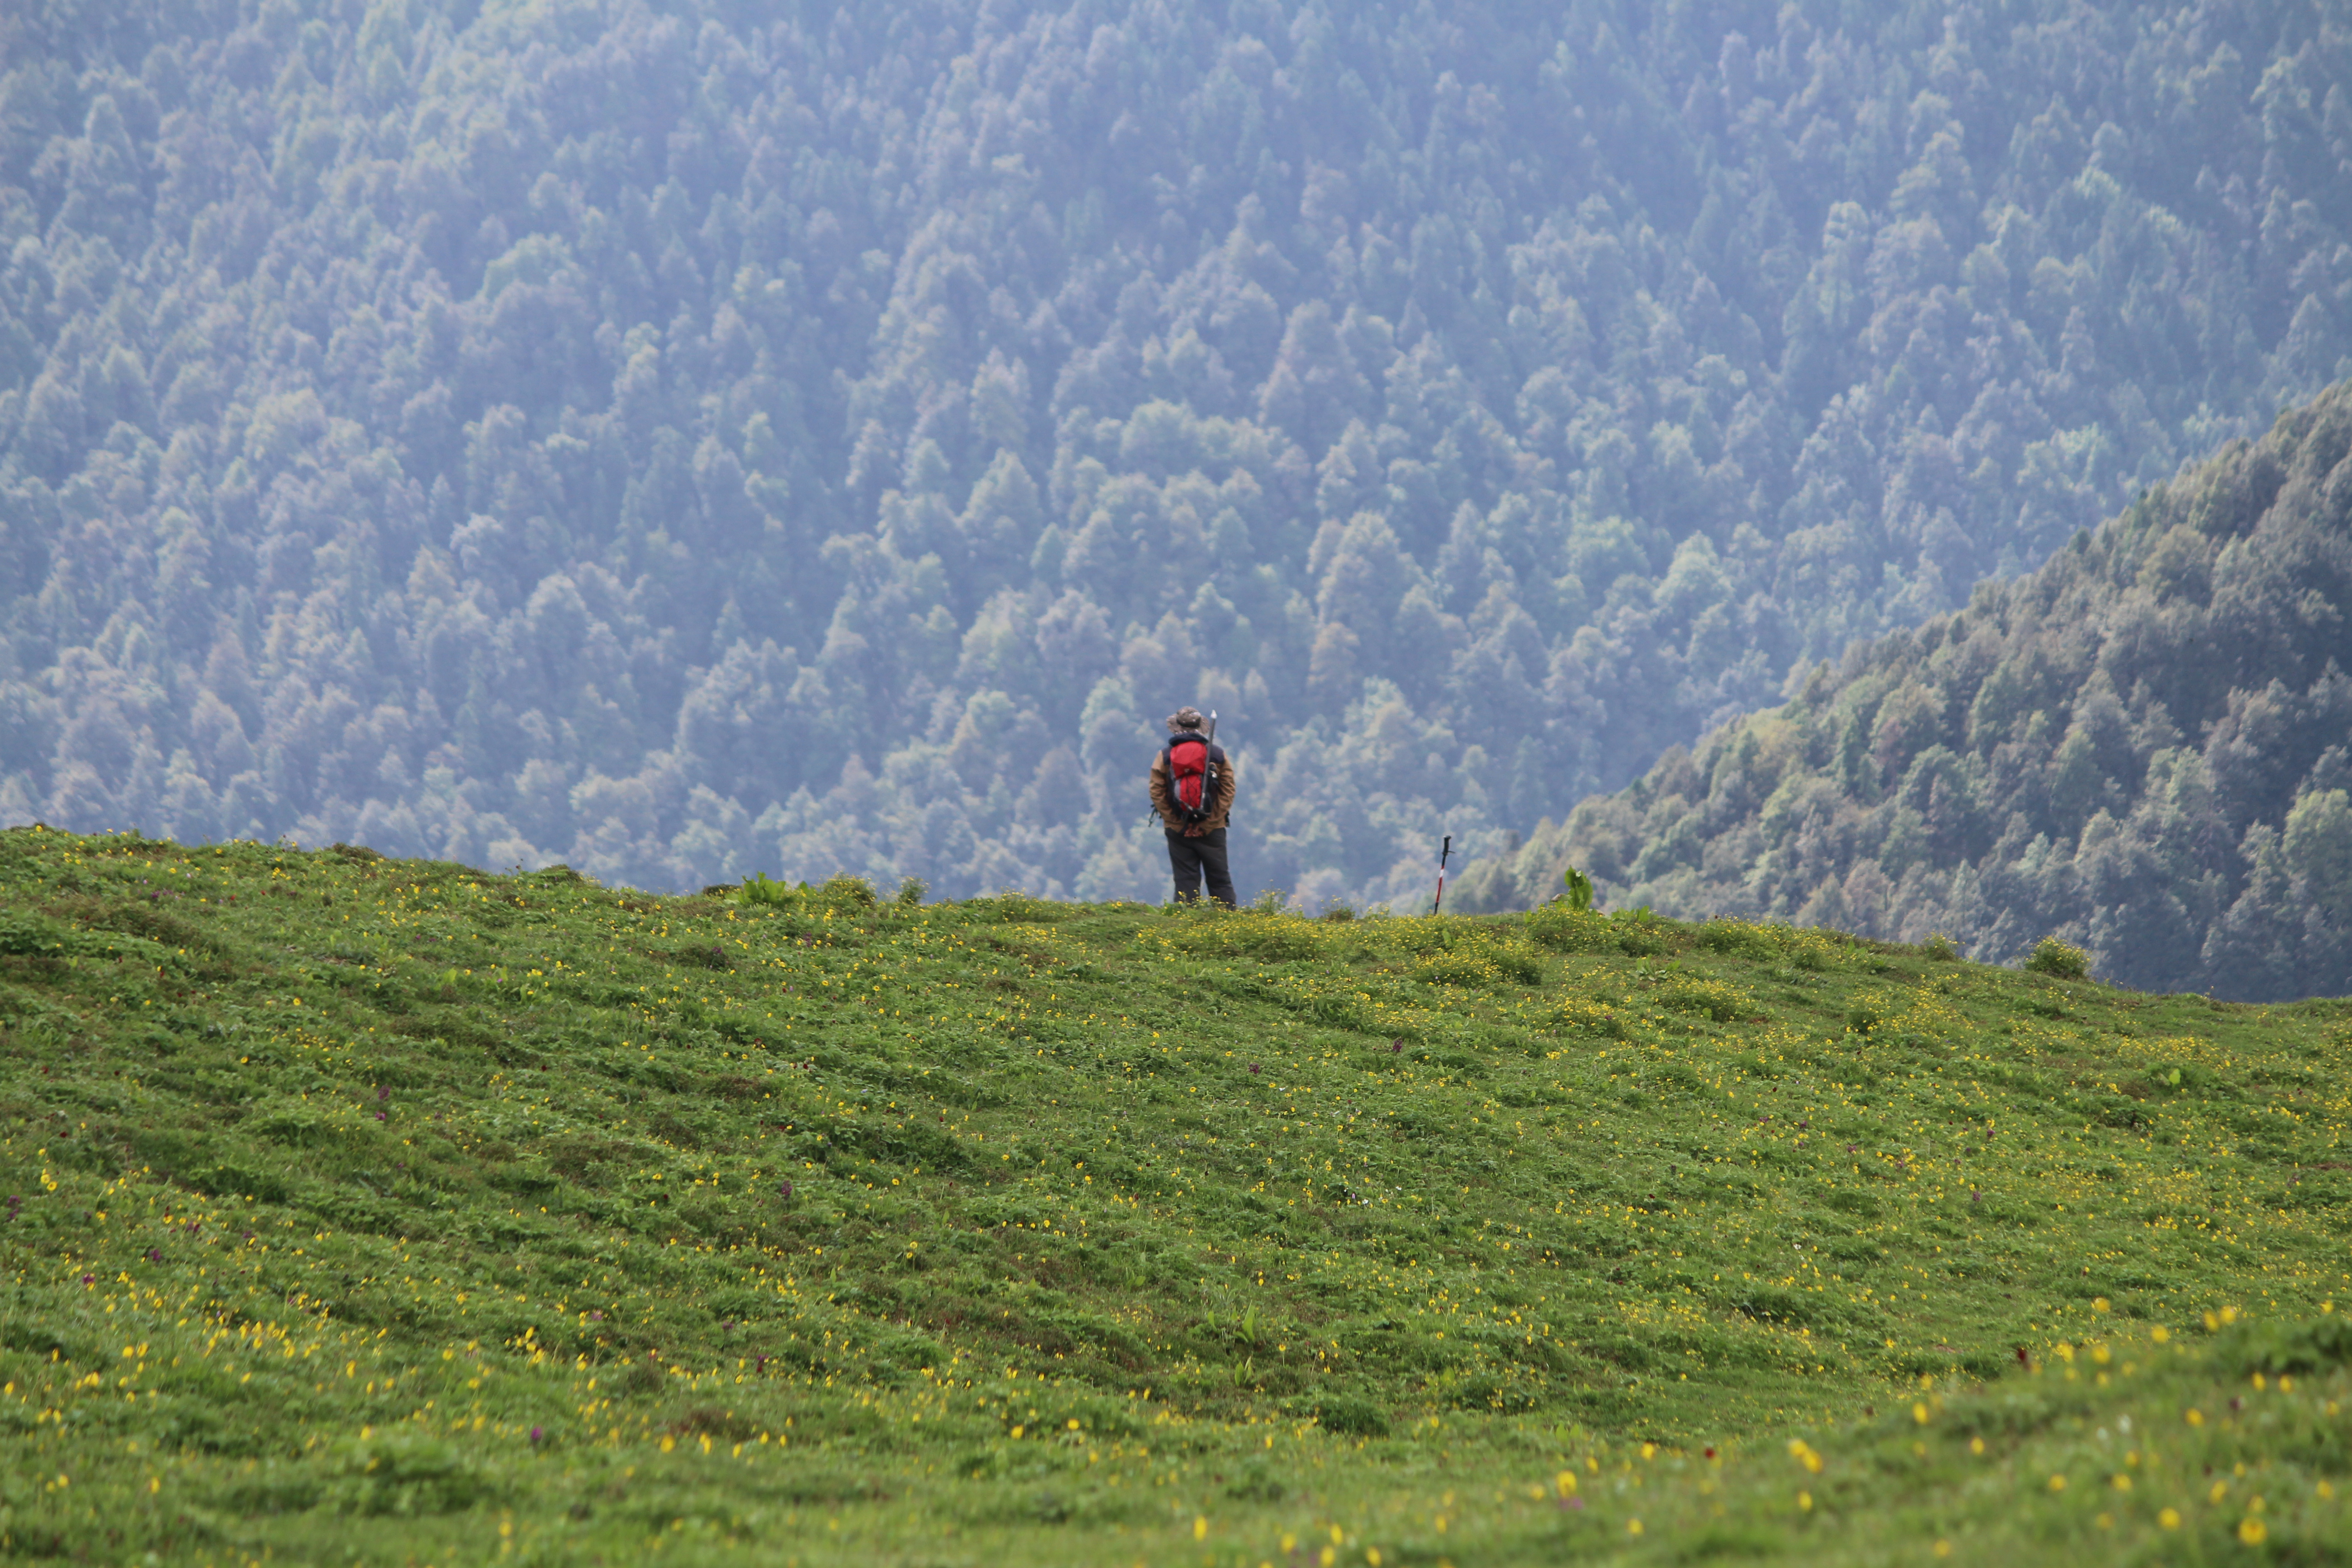 Man carrying a bagpack standing over a green valley lokking over the beauty of nature